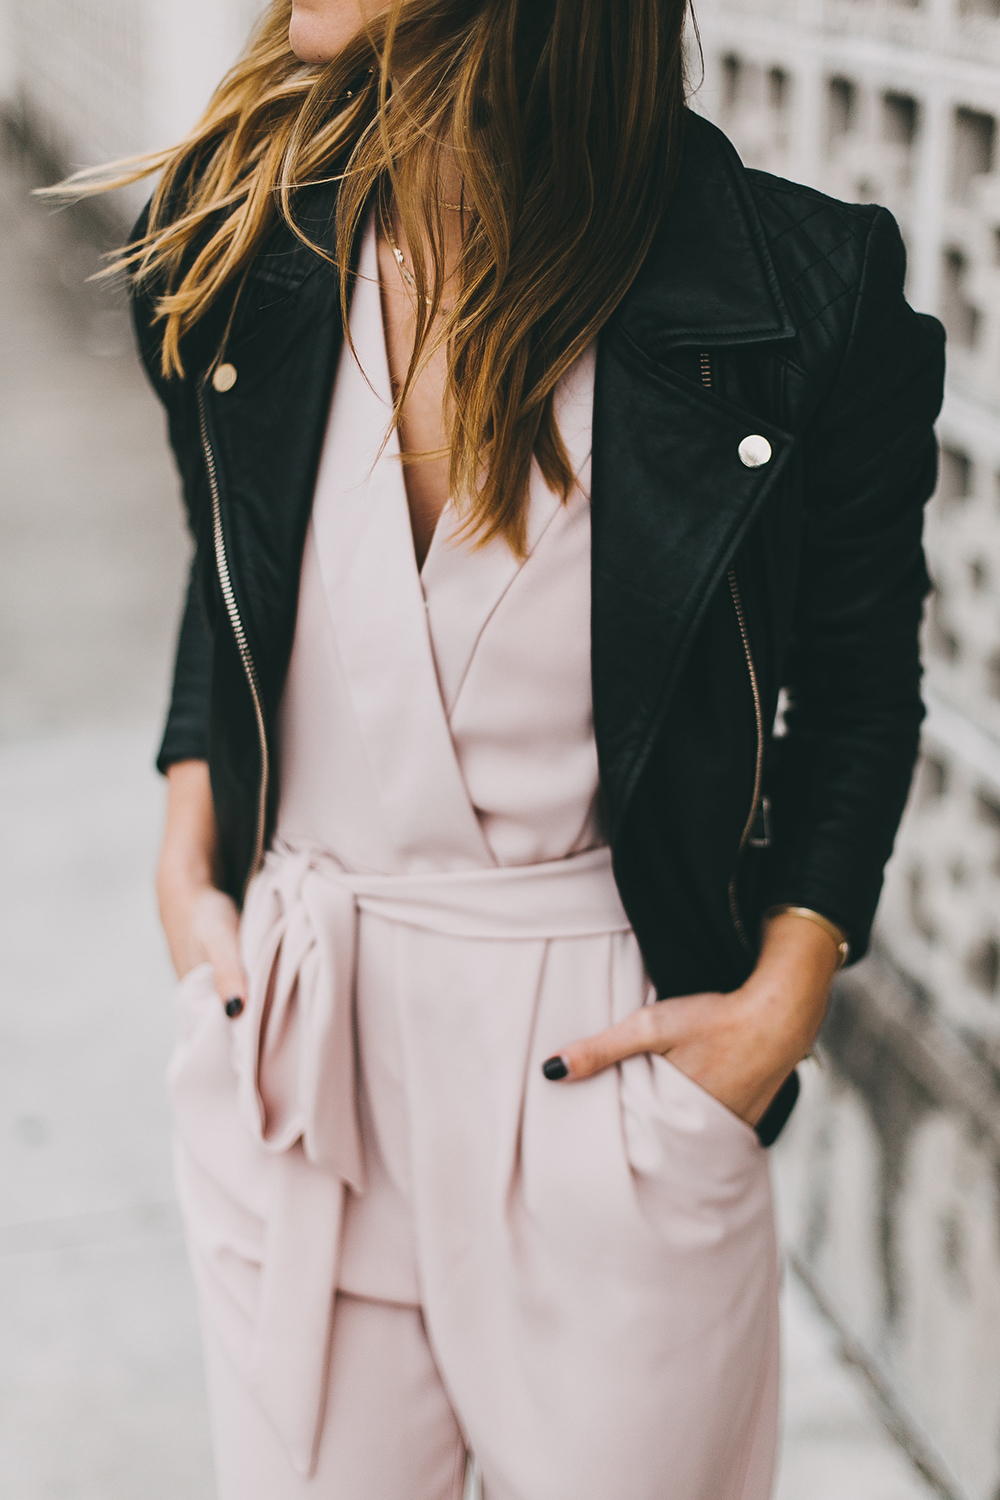 livvyland-river-island-blush-pink-jumpsuit-black-leather-jacket-holiday-party-nye-outfit-inspiration-ideas-8